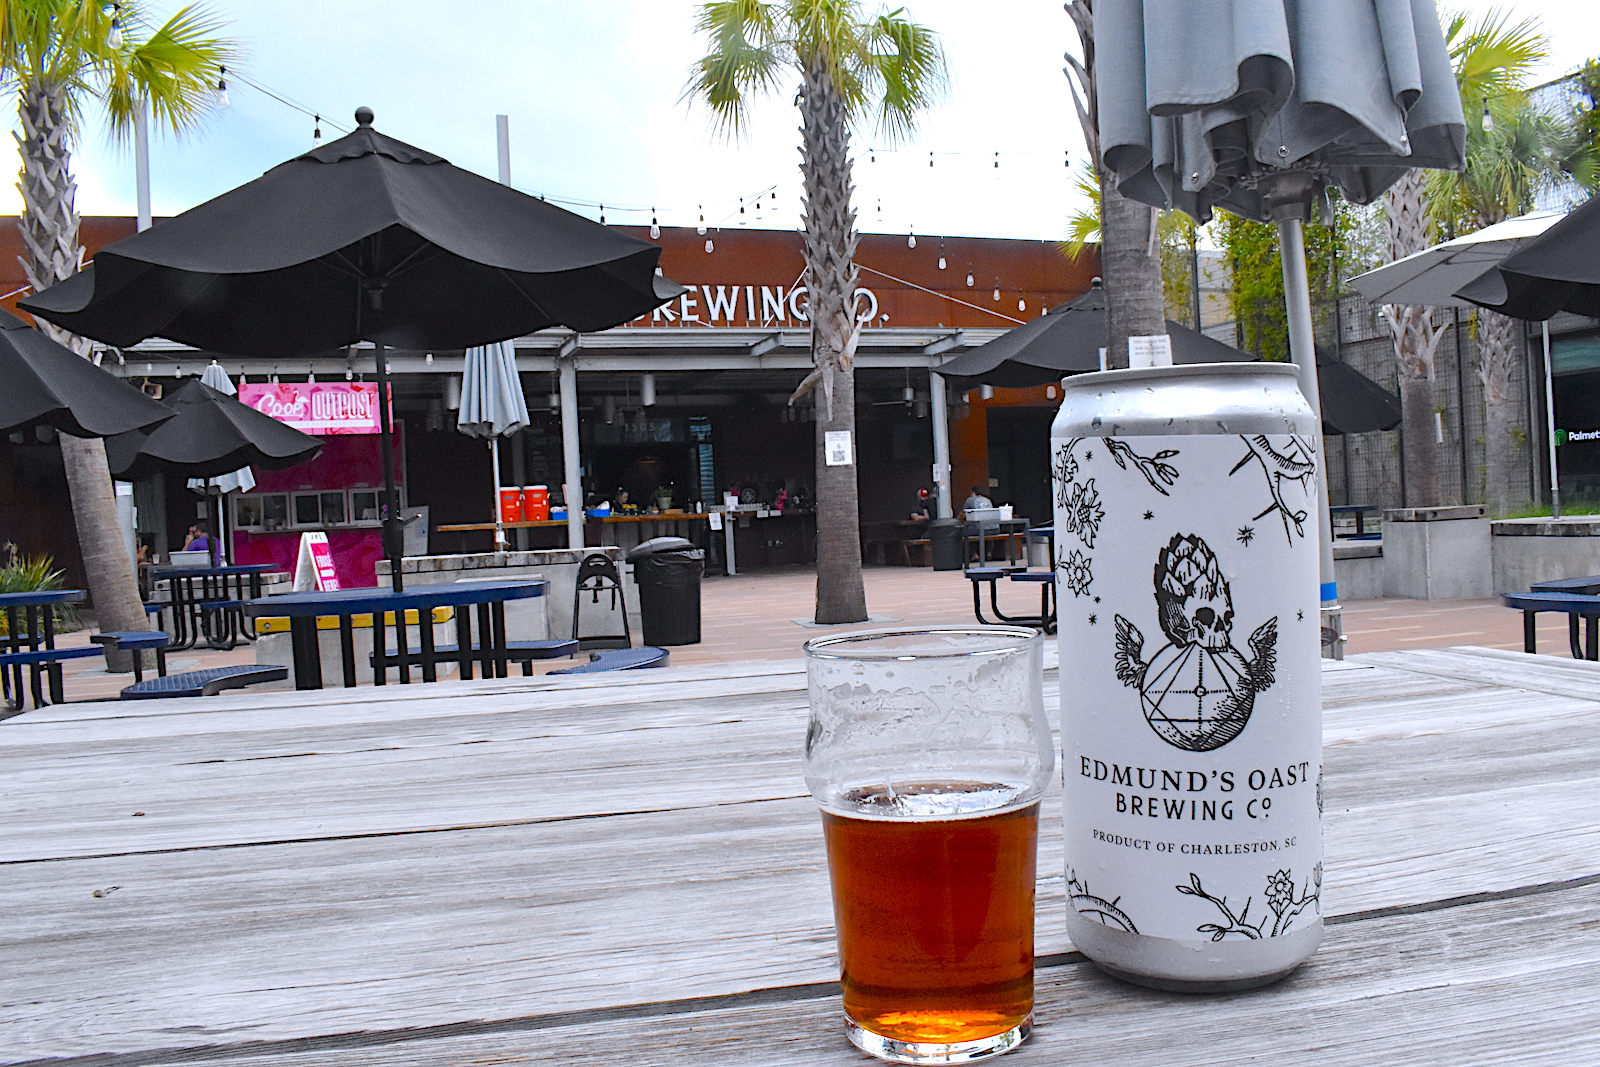 During the pandemic Edmund's Oast Brewing in Charleston pivoted to 32-ounce